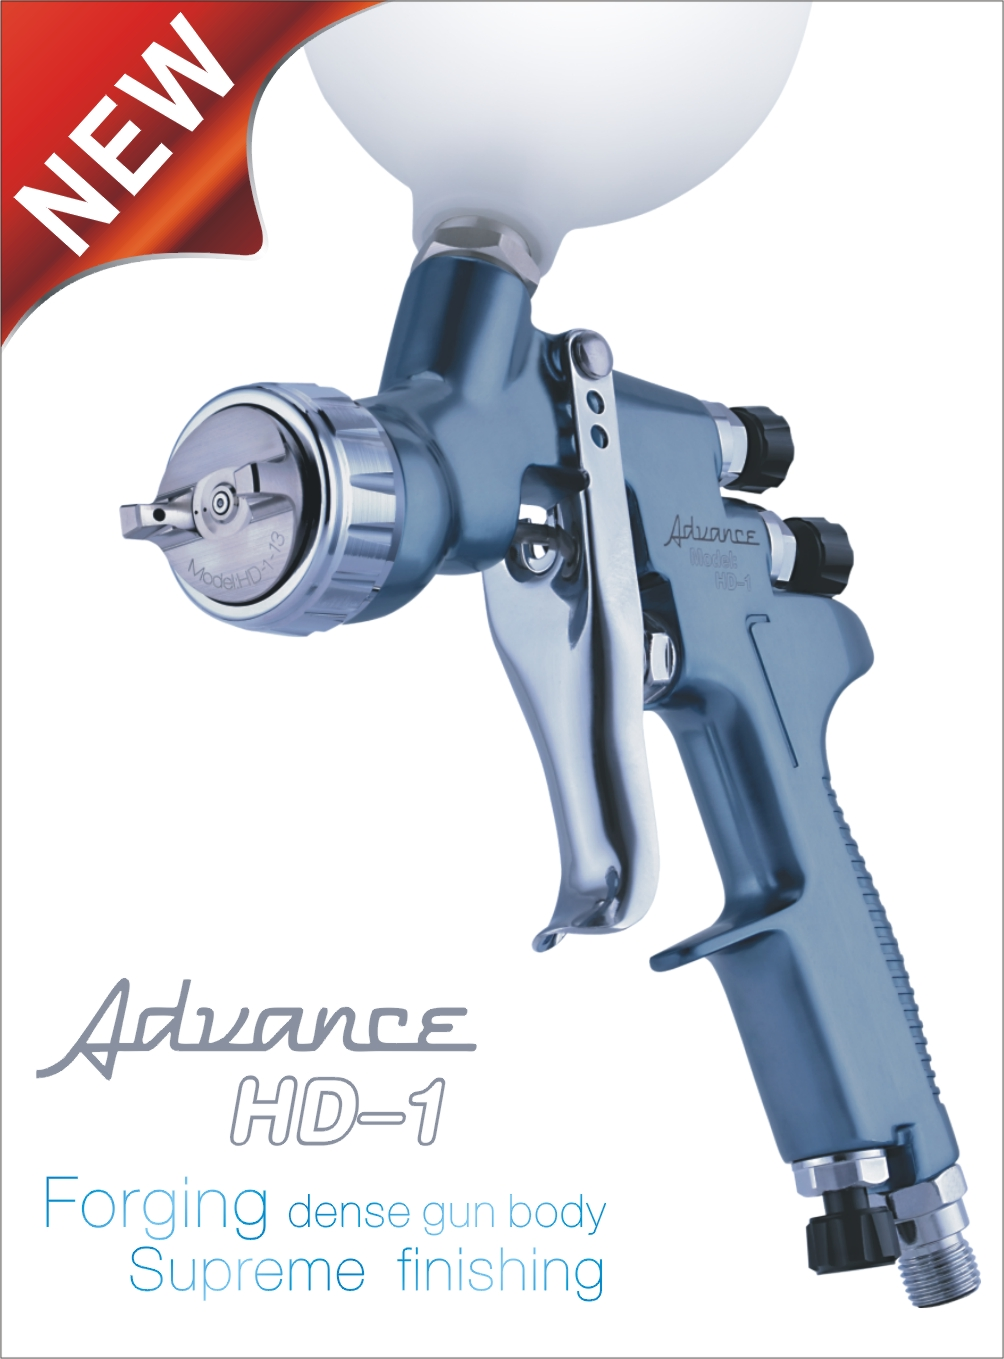 Advance-Hd Pistola de pintura